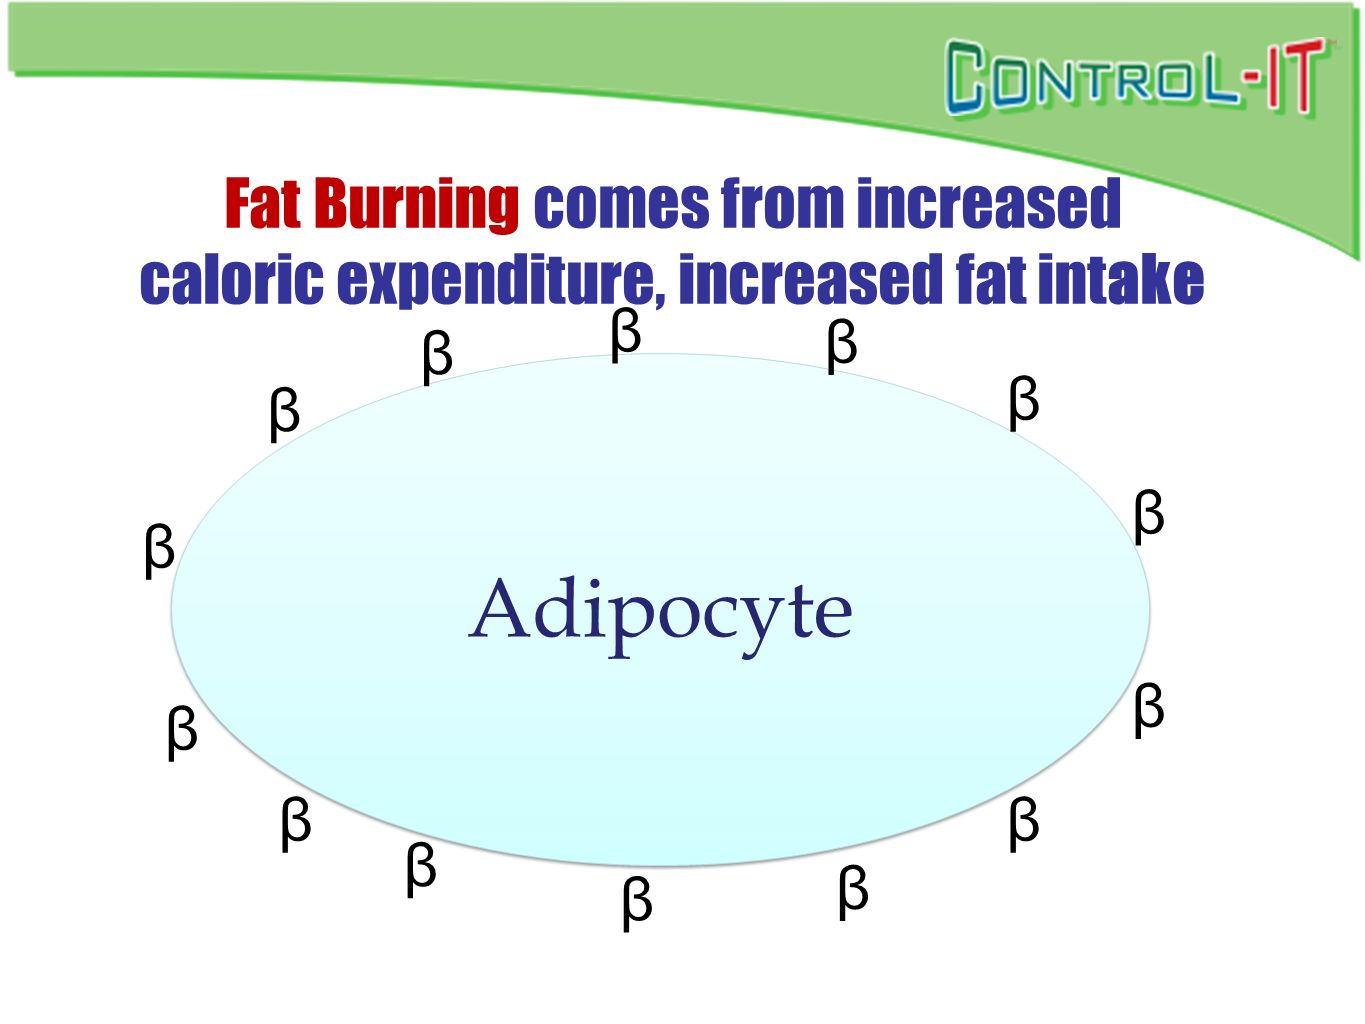 Fat Burning comes from increased caloric expenditure, increased fat intake